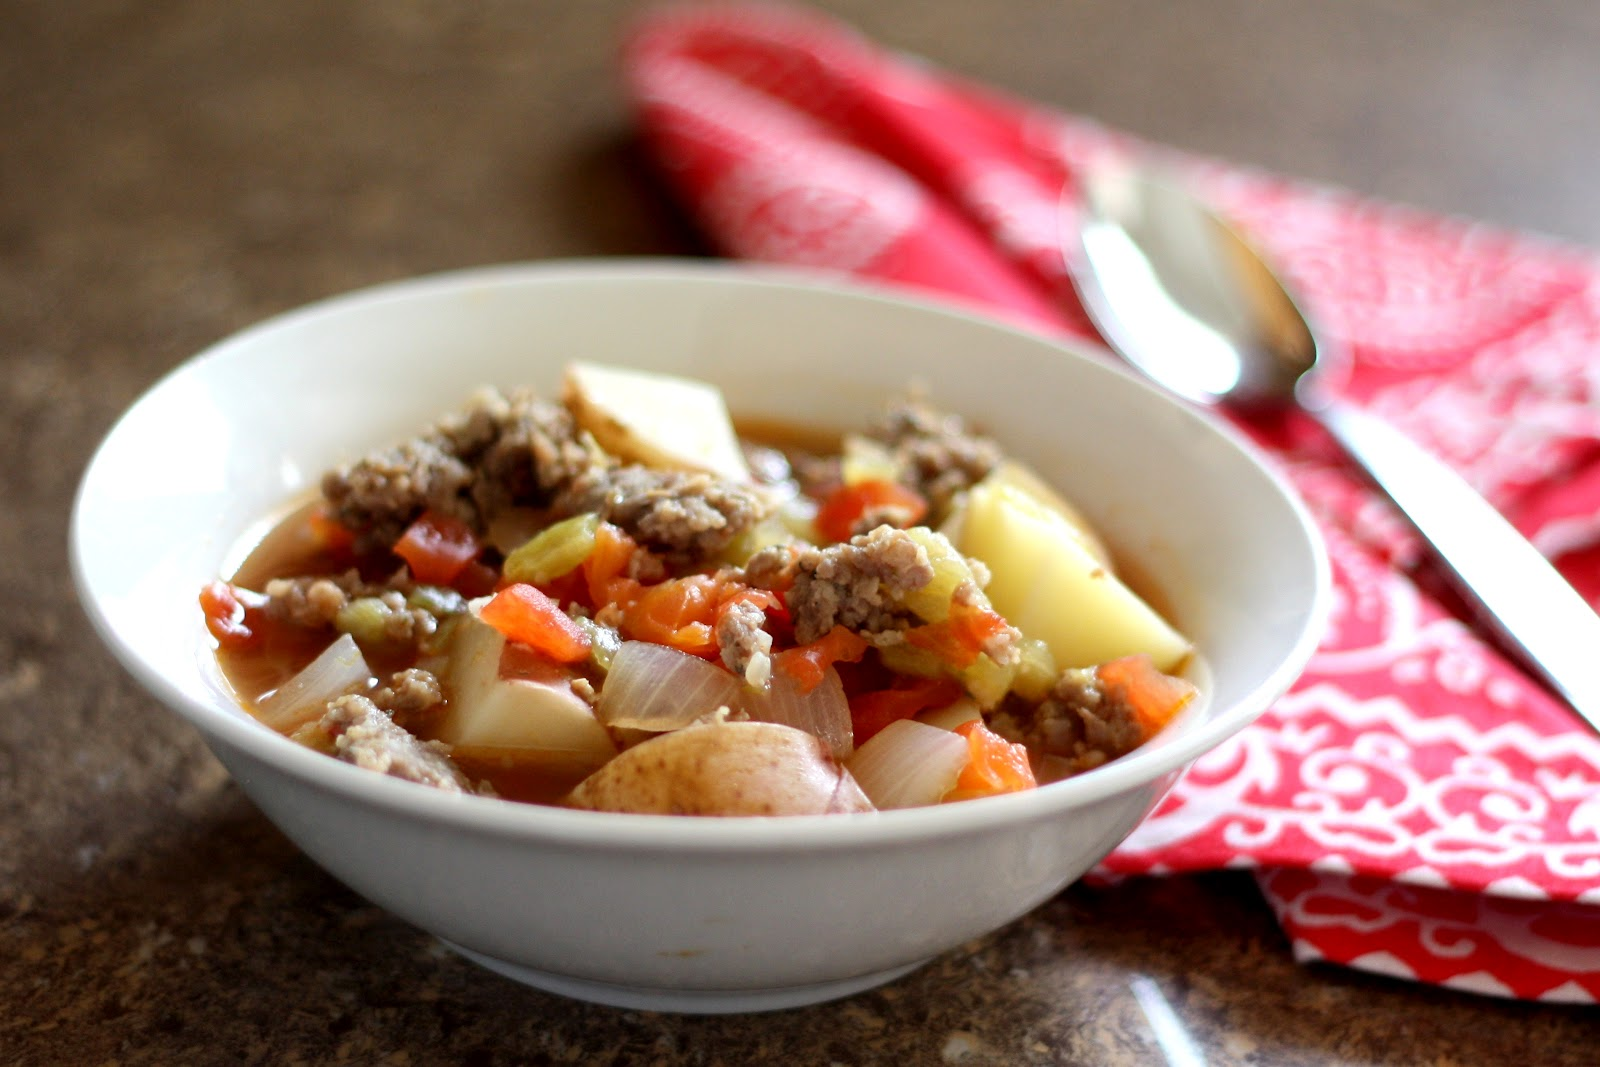 Barefeet In The Kitchen: Green Chili Stew with Sausage and Tomatoes